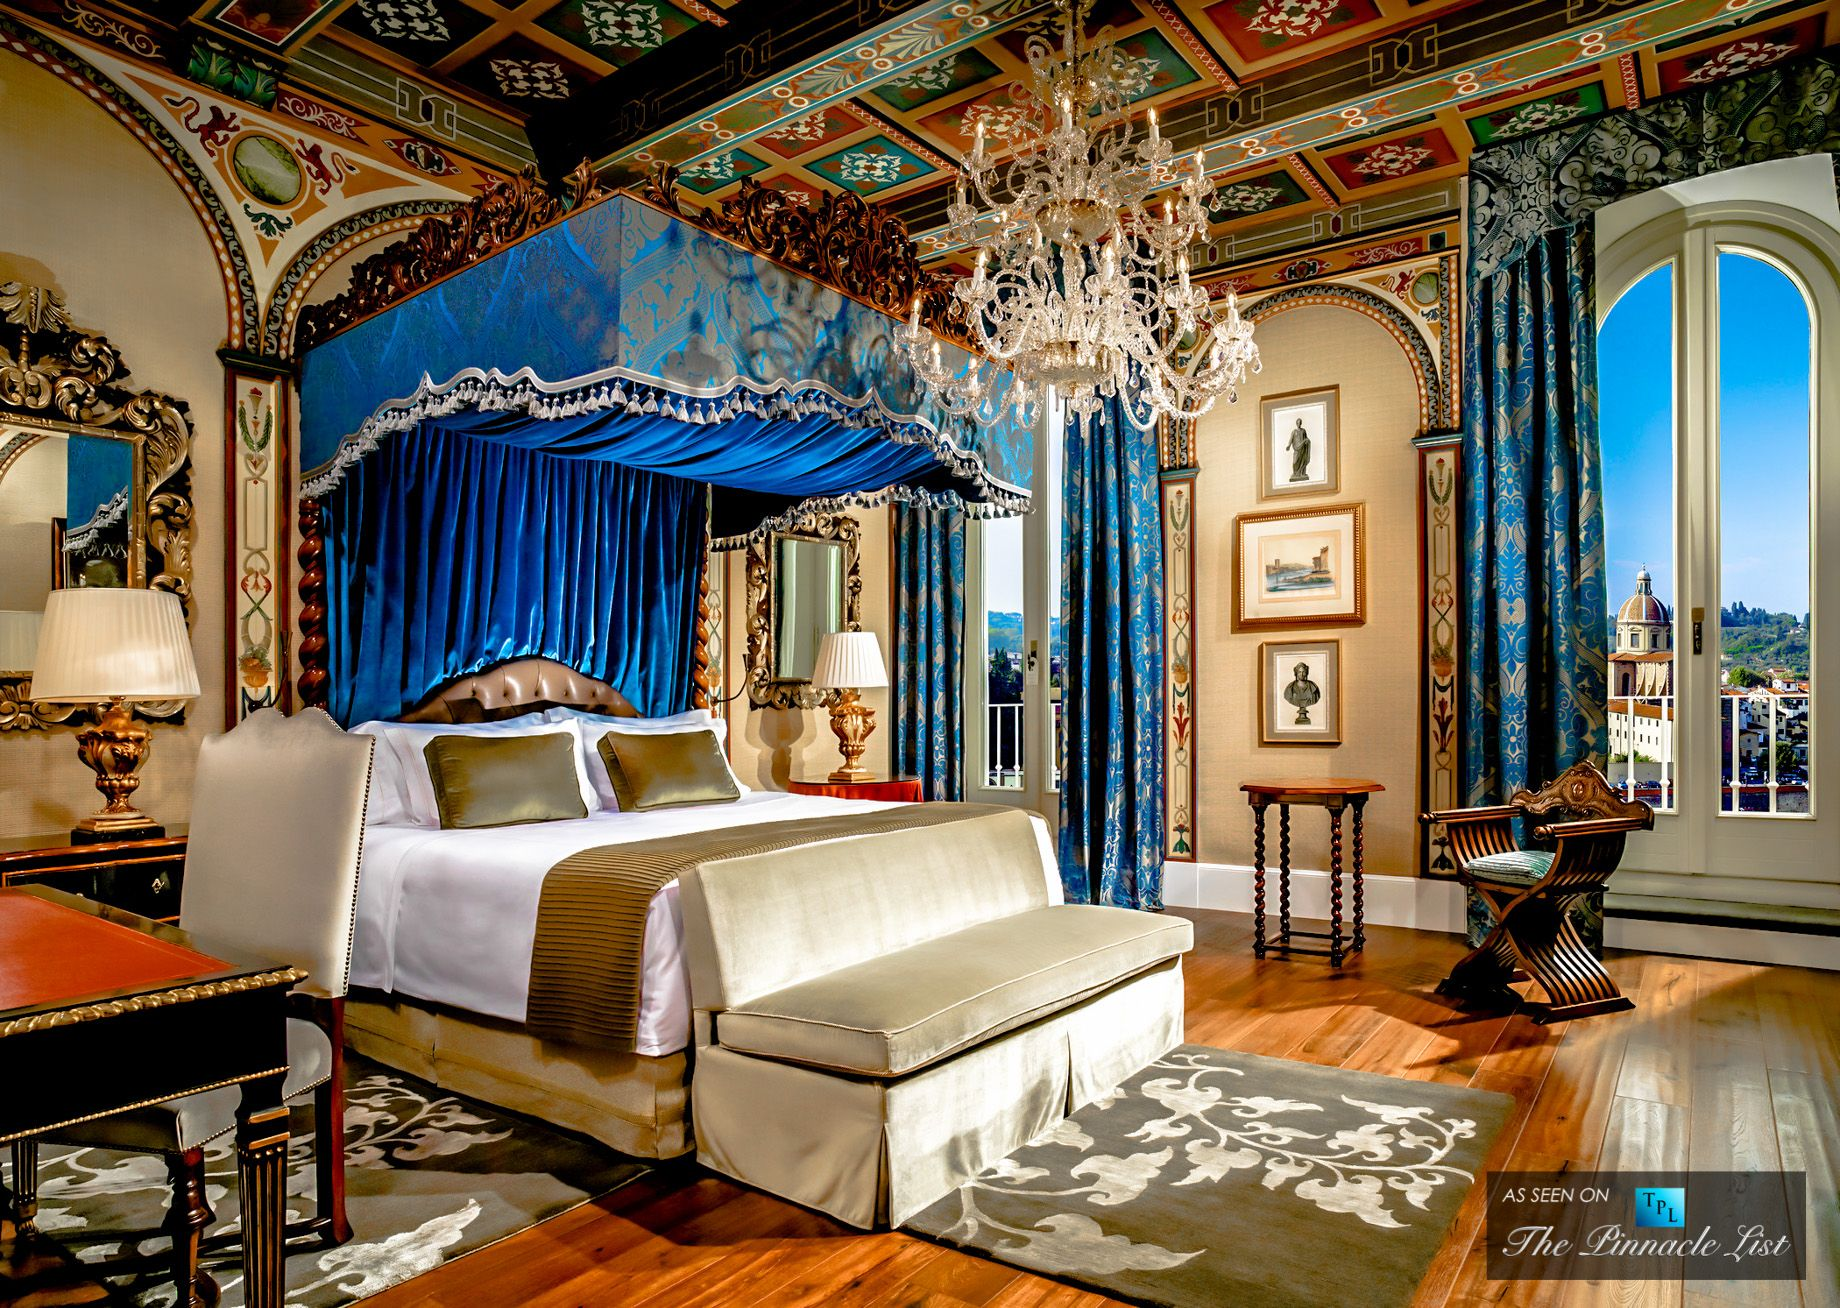 St Regis Luxury Hotel Florence Italy Royal Suite